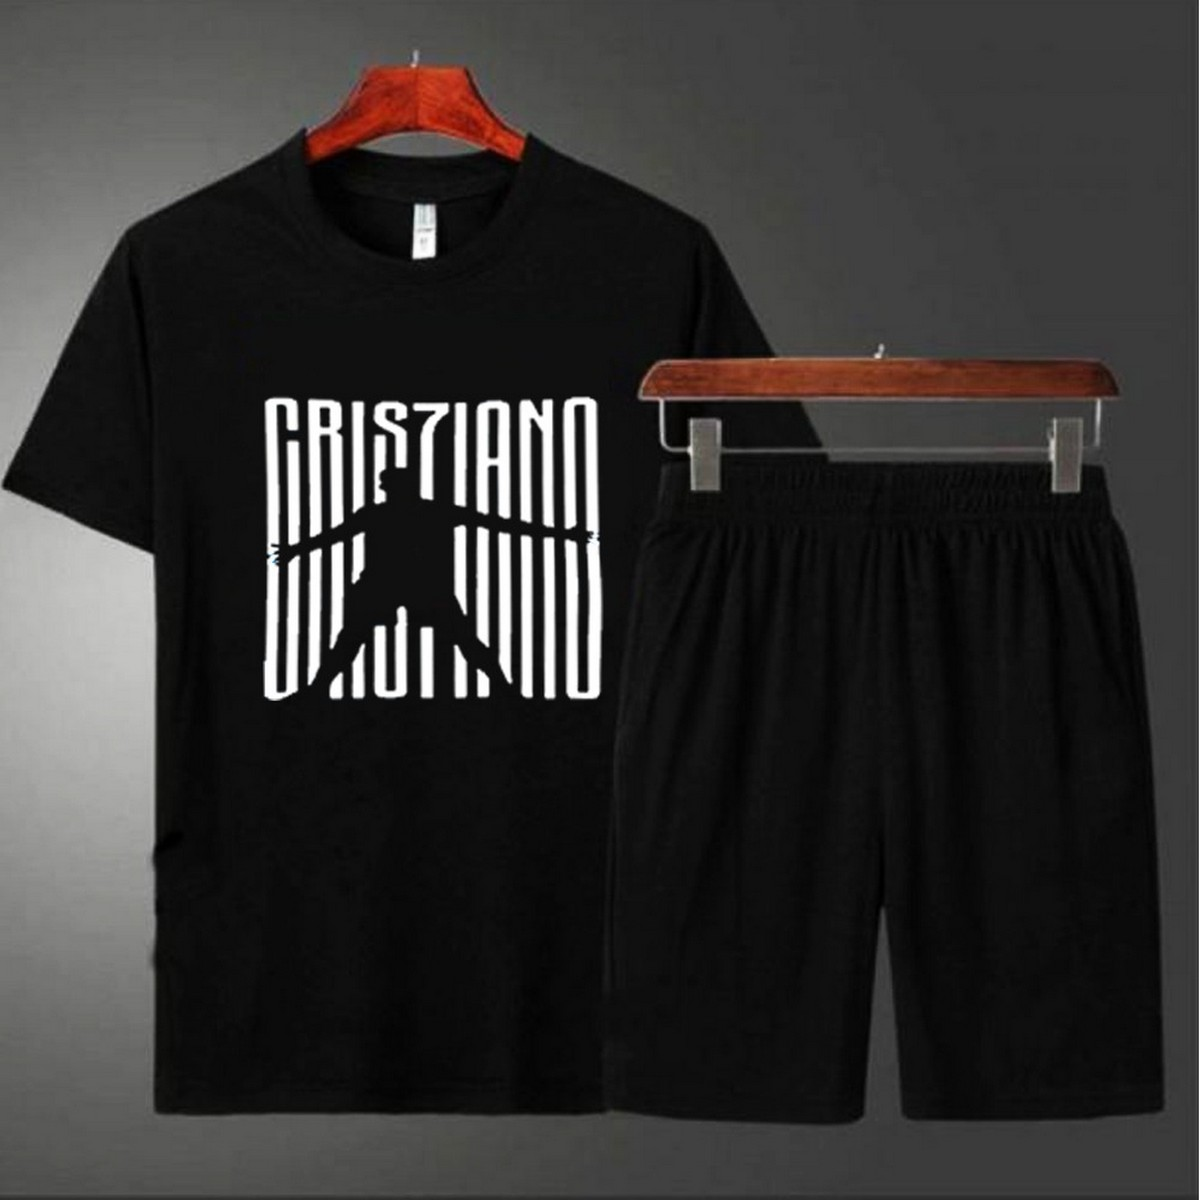 New Cristaino Printed Black Tshirt with Plain Short Summer Gym Wear Shorts Cotton Half Sleeves Fashion Tees Export Quality Fabric T shirts For Men